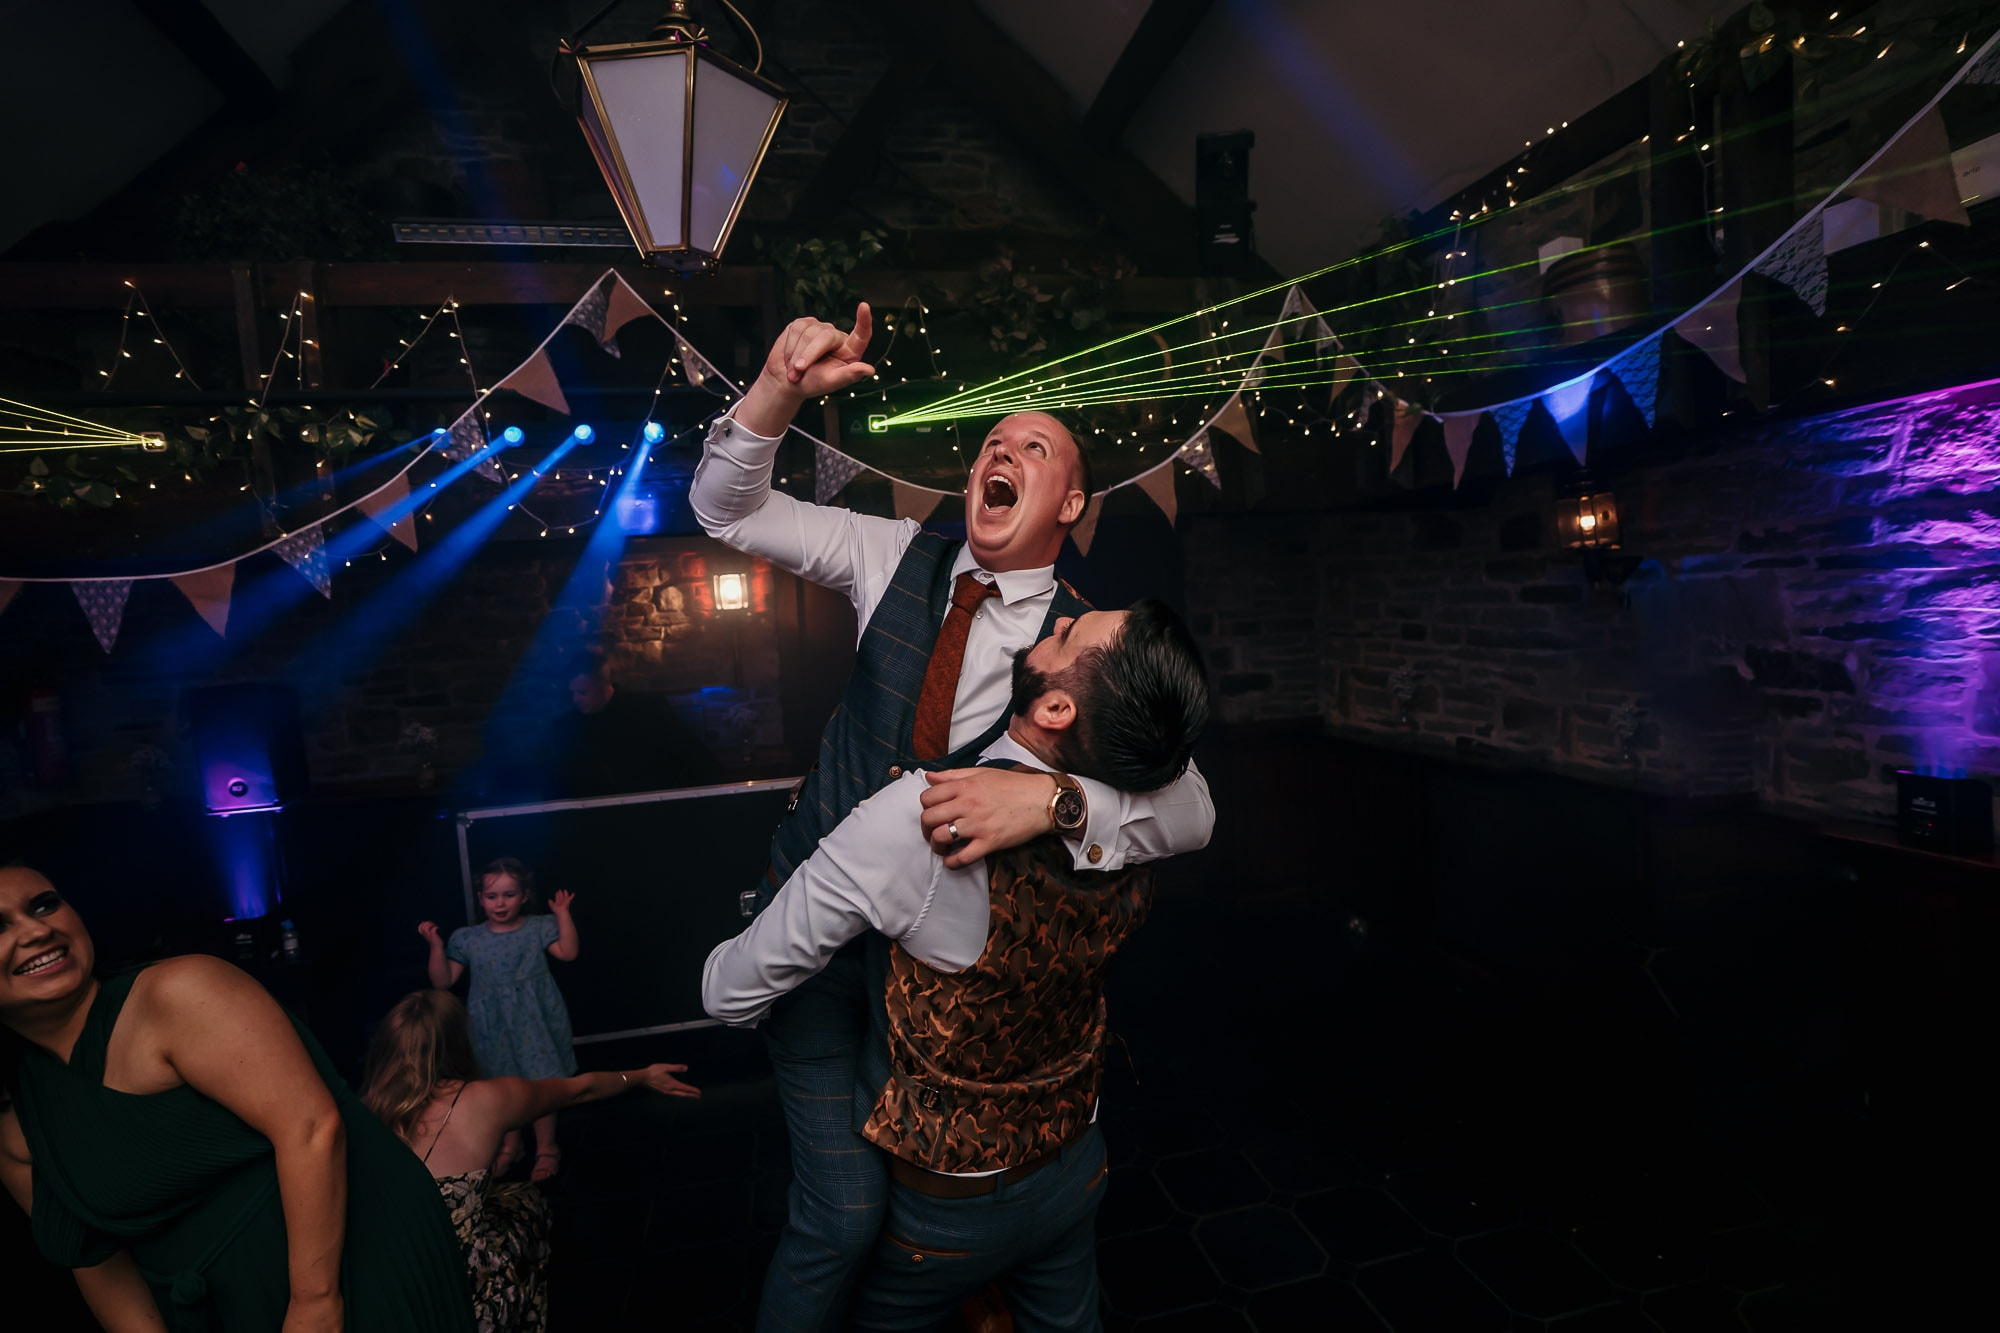 Dancing on wedding day at cubley hall